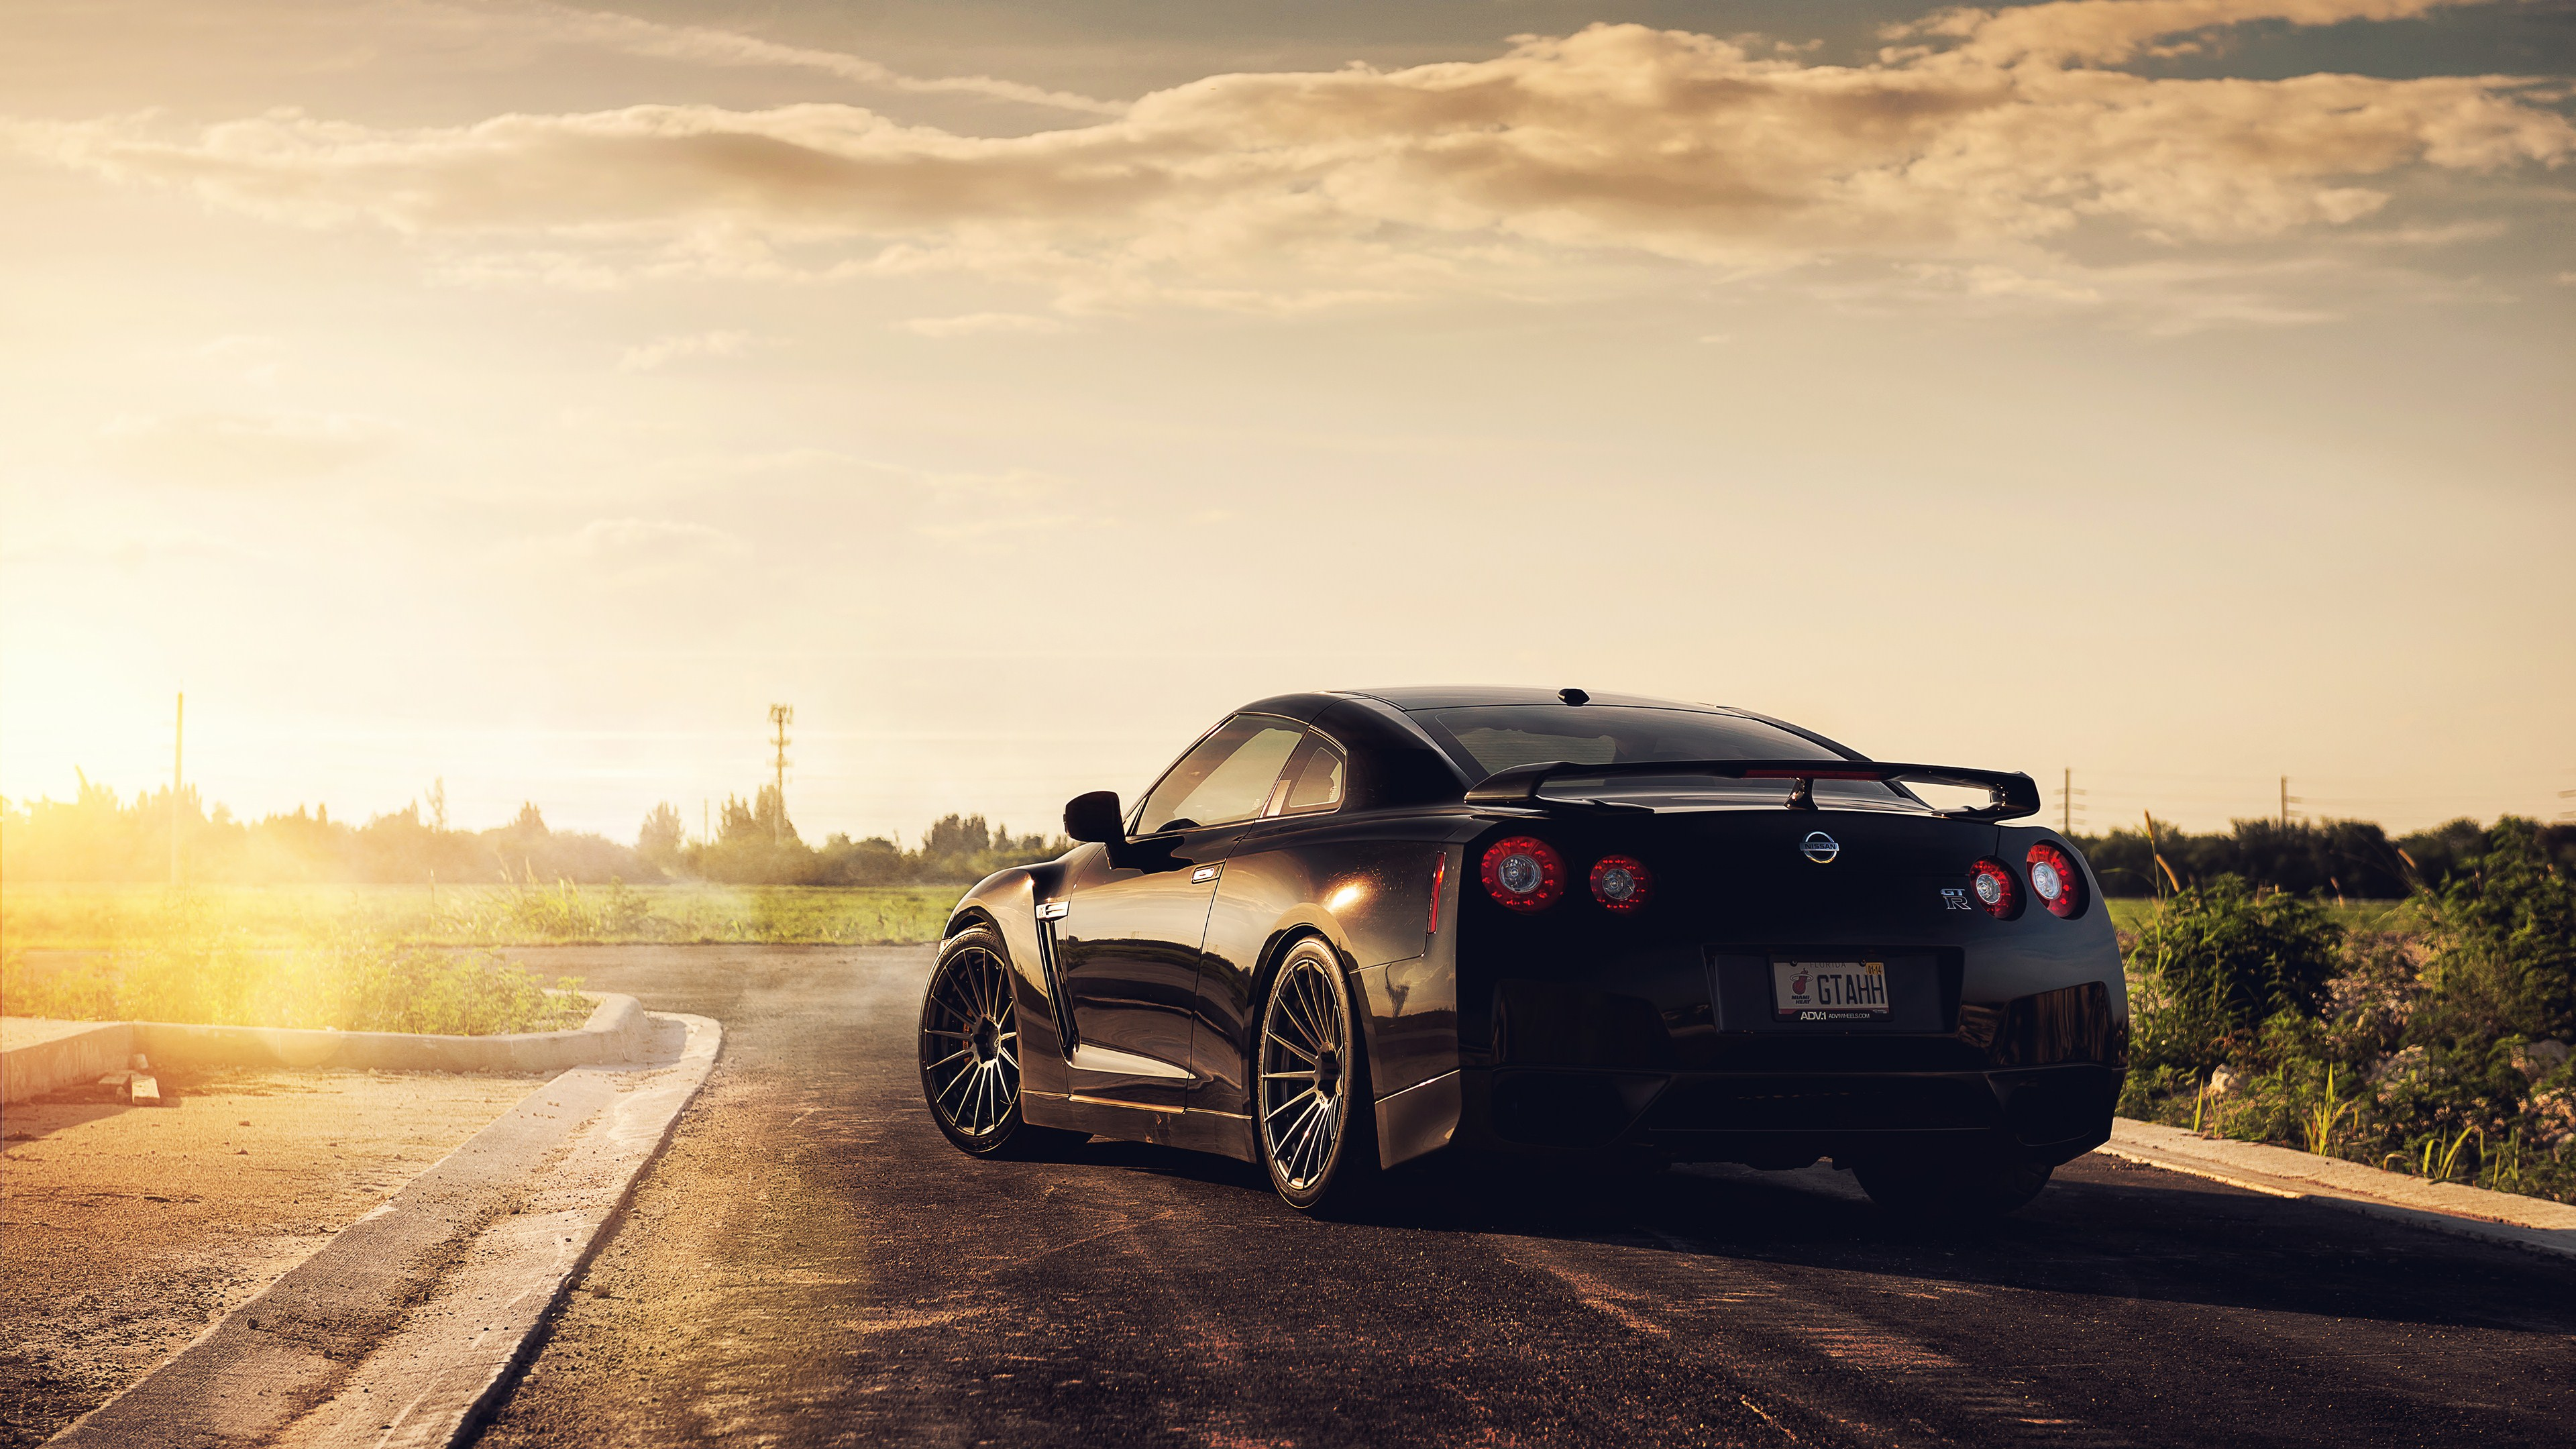 4K-cars-wallpapers (8)